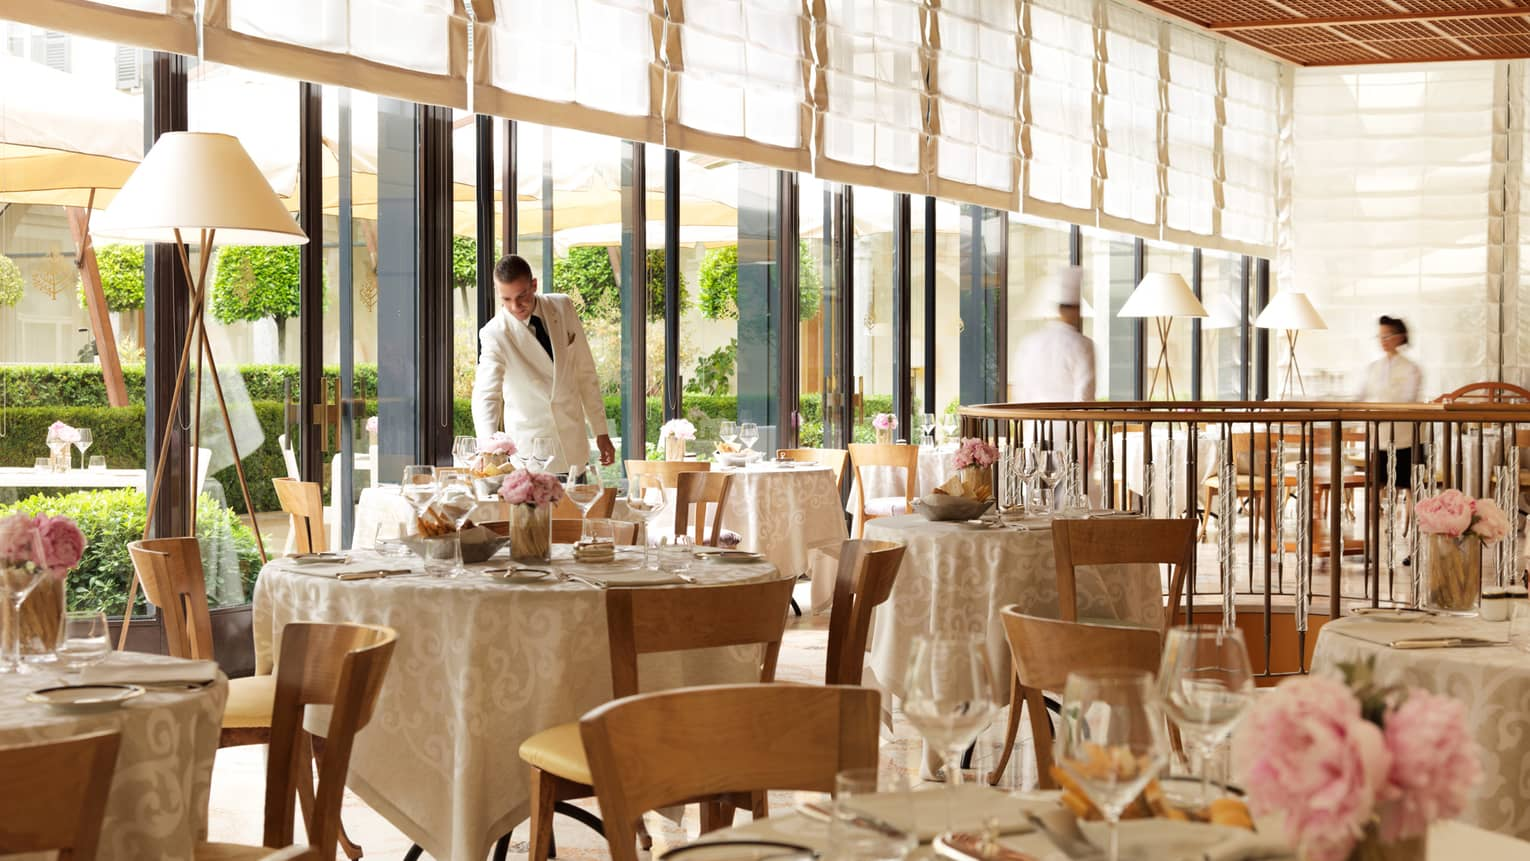 Server wearing white suit sets table in sunny La Veranda dining room, wall of windows